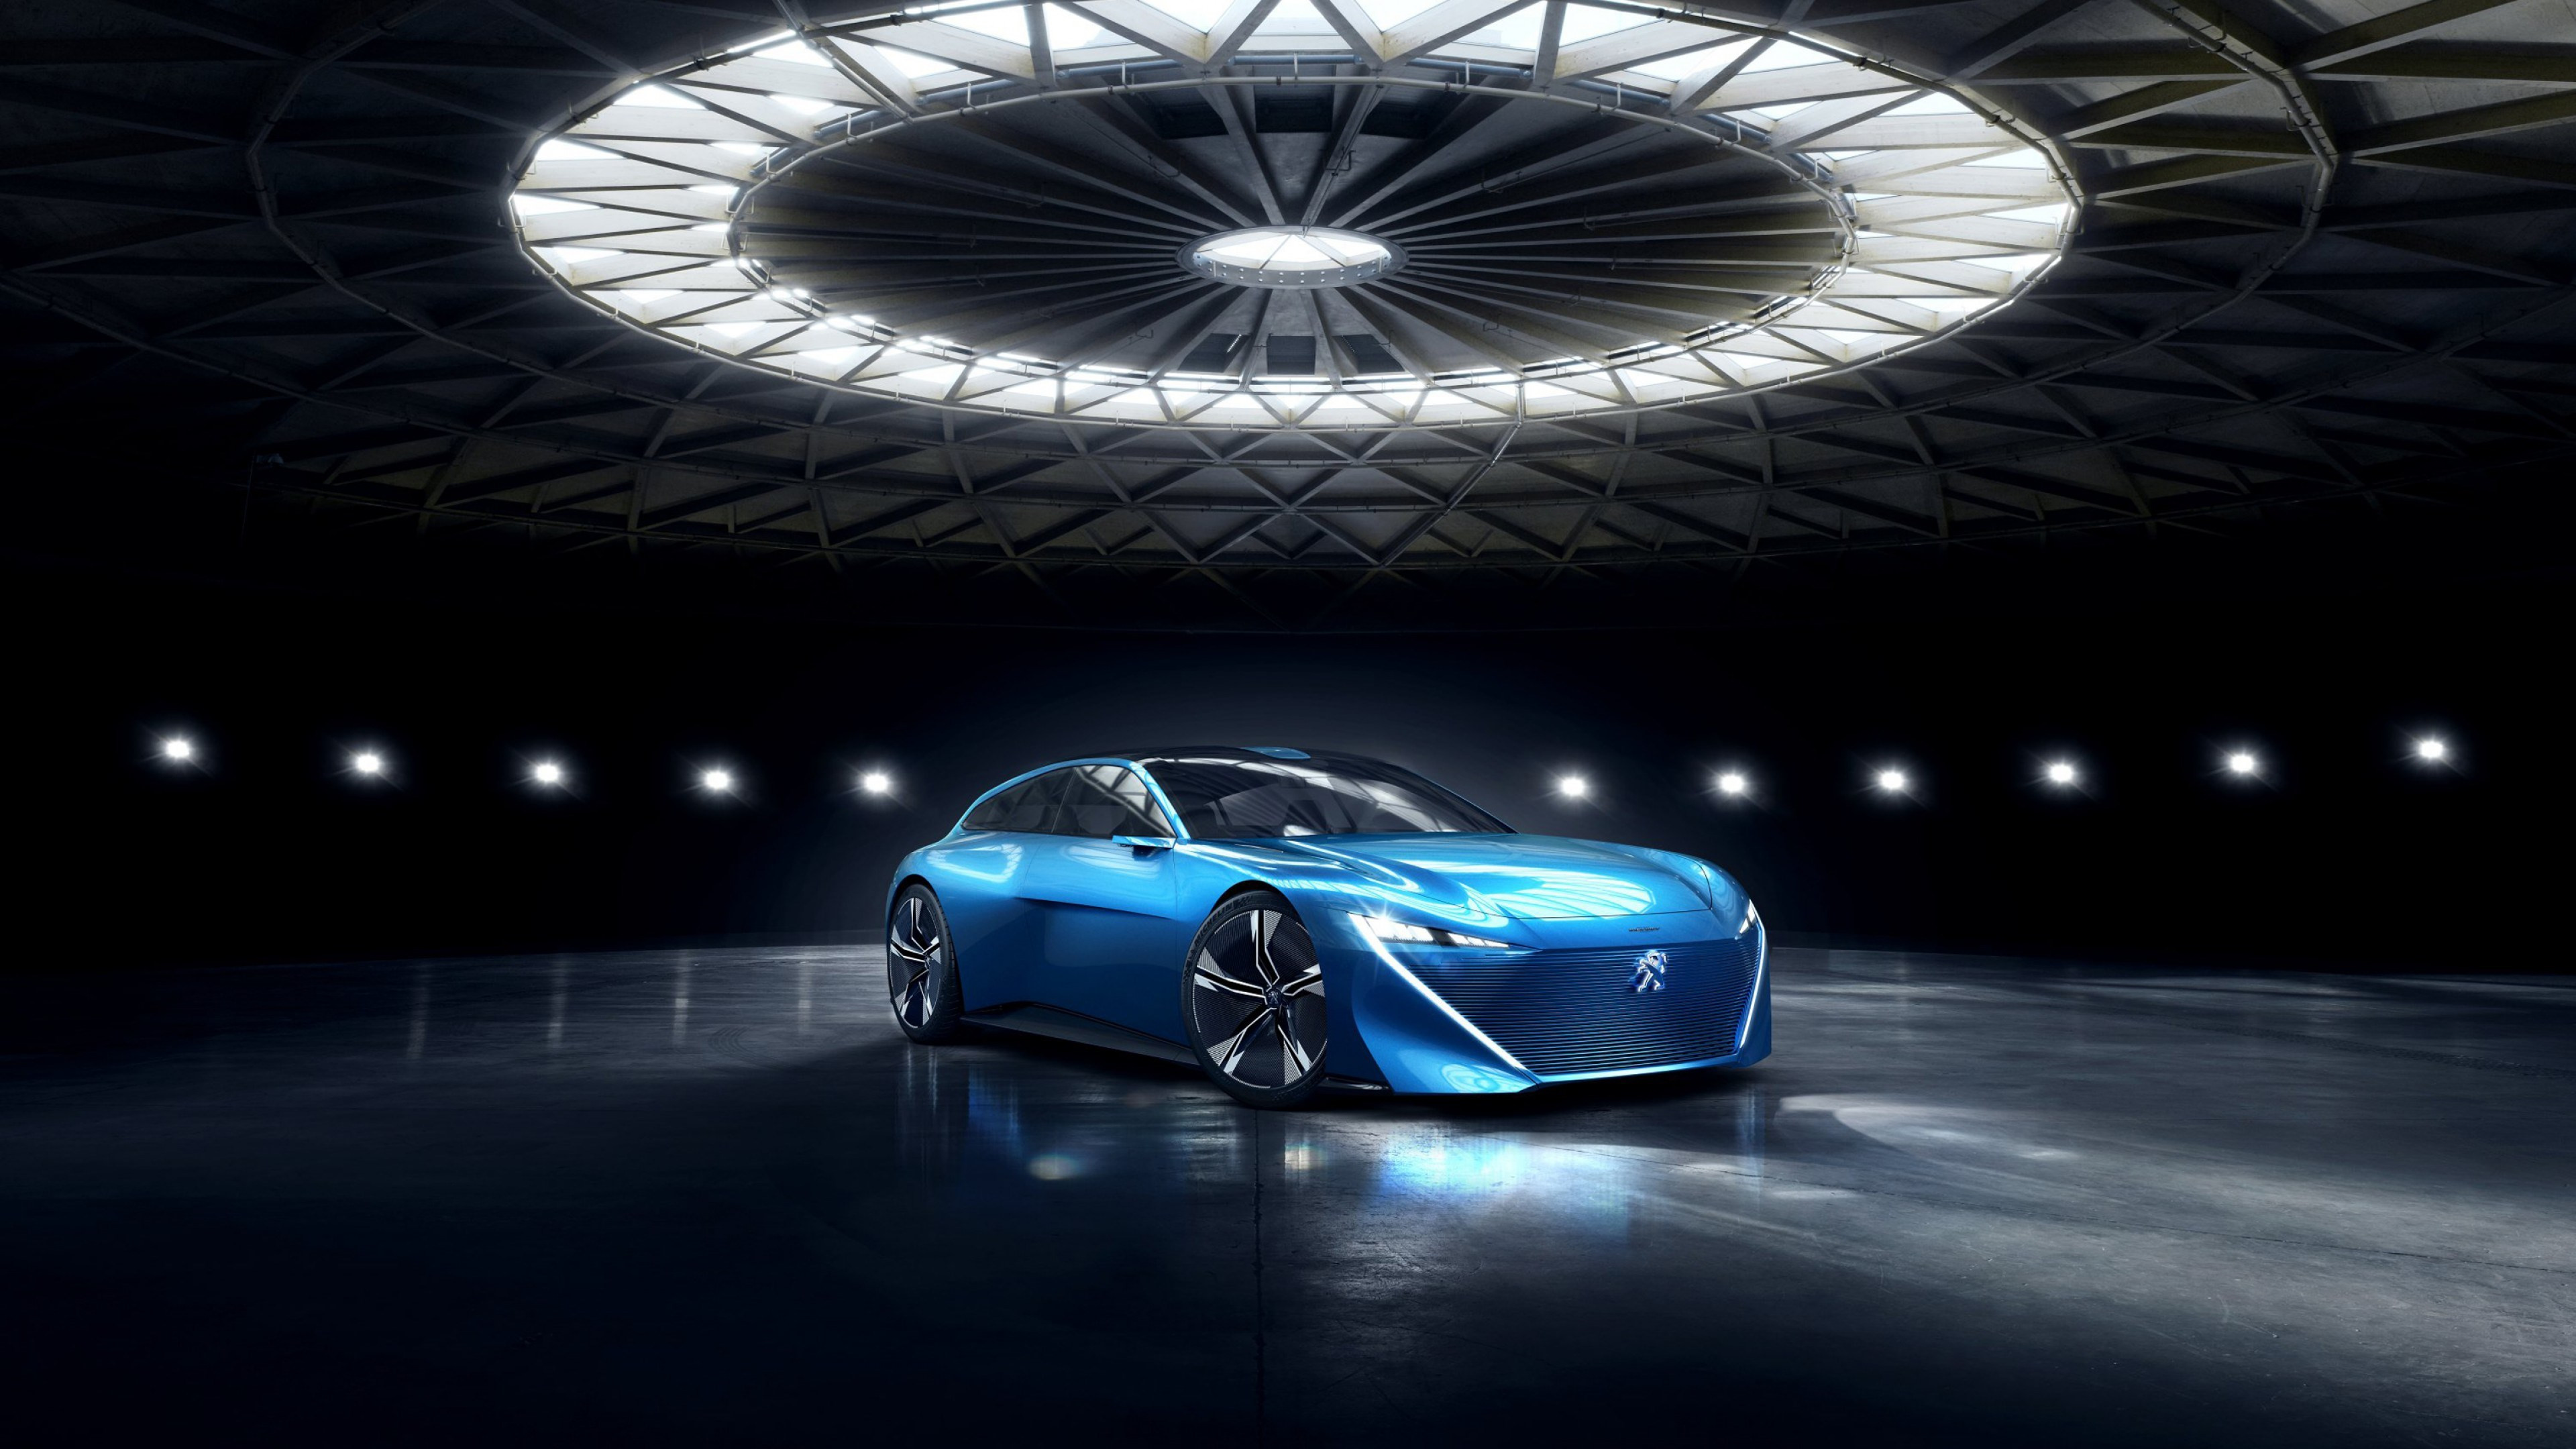 Peugeot Instinct | 3840x2160 wallpaper